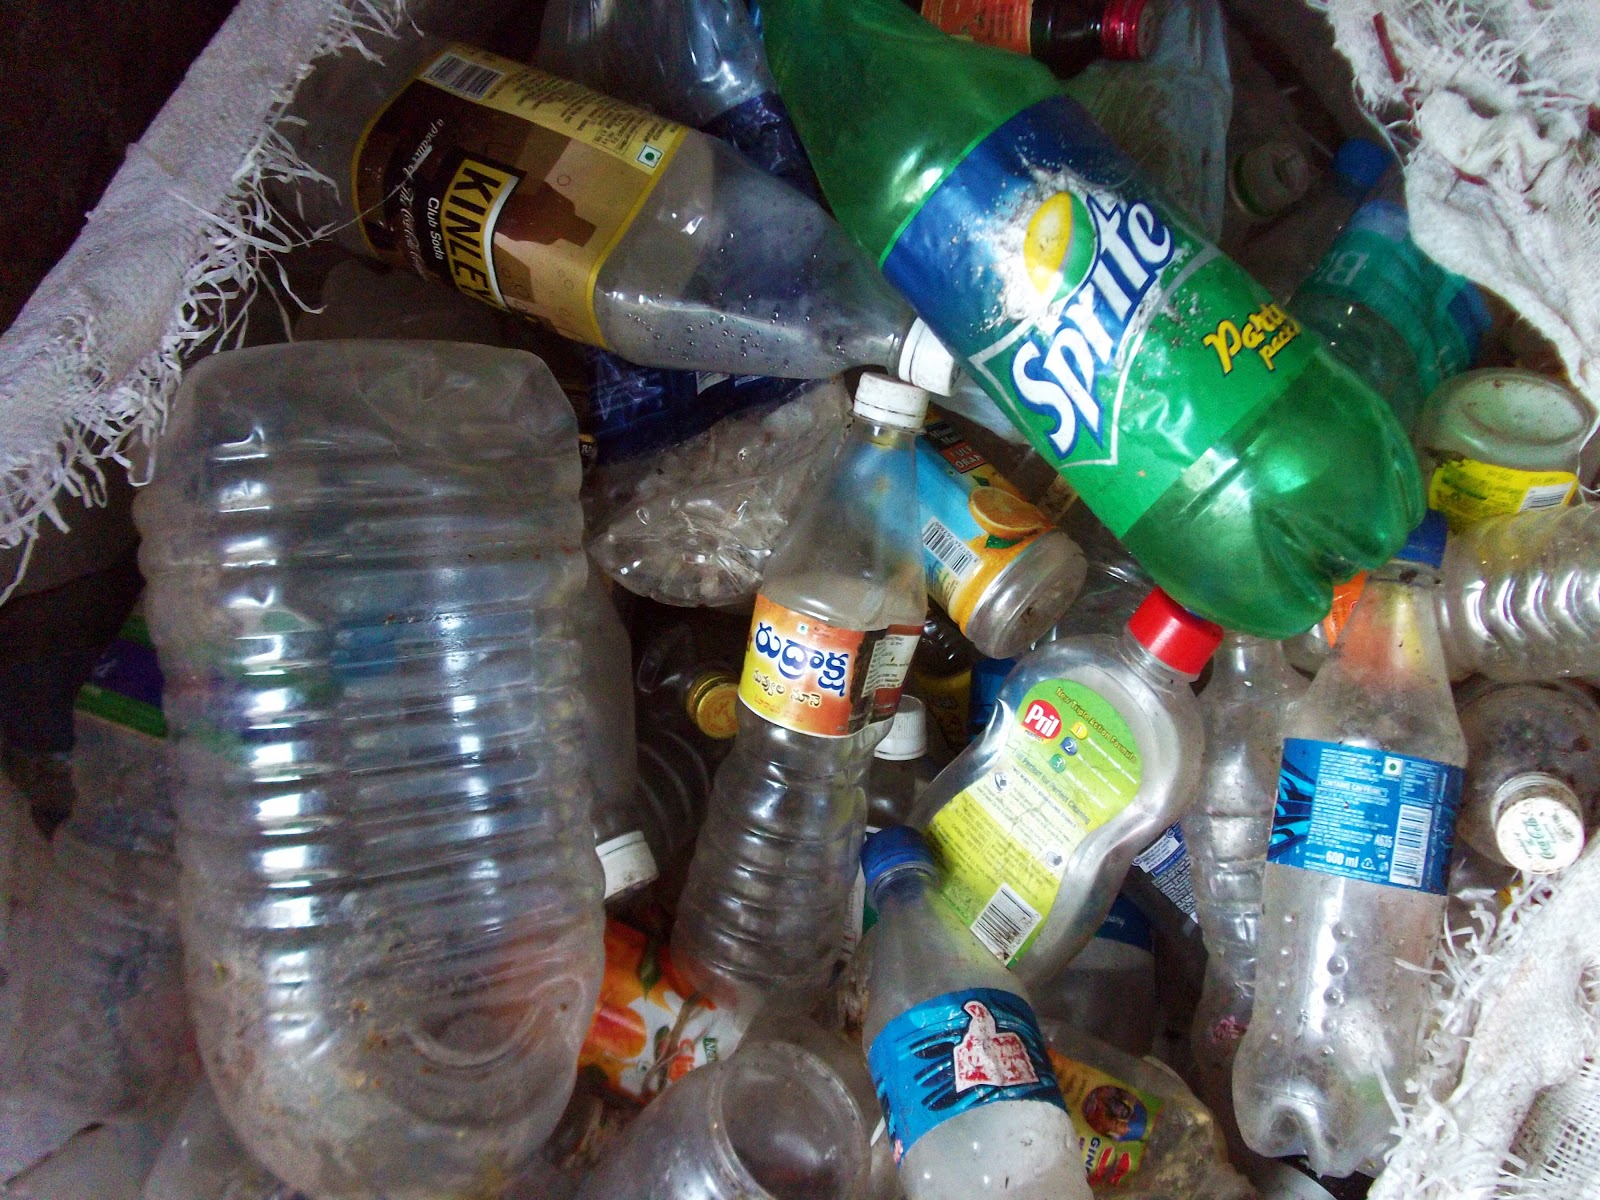 non degradable waste Disposal of non-biodegradable waste is a major concern, not just plastic, a variety of waste being accumulated there are a few ways to help non-biodegradable waste management and waste disposal methods.